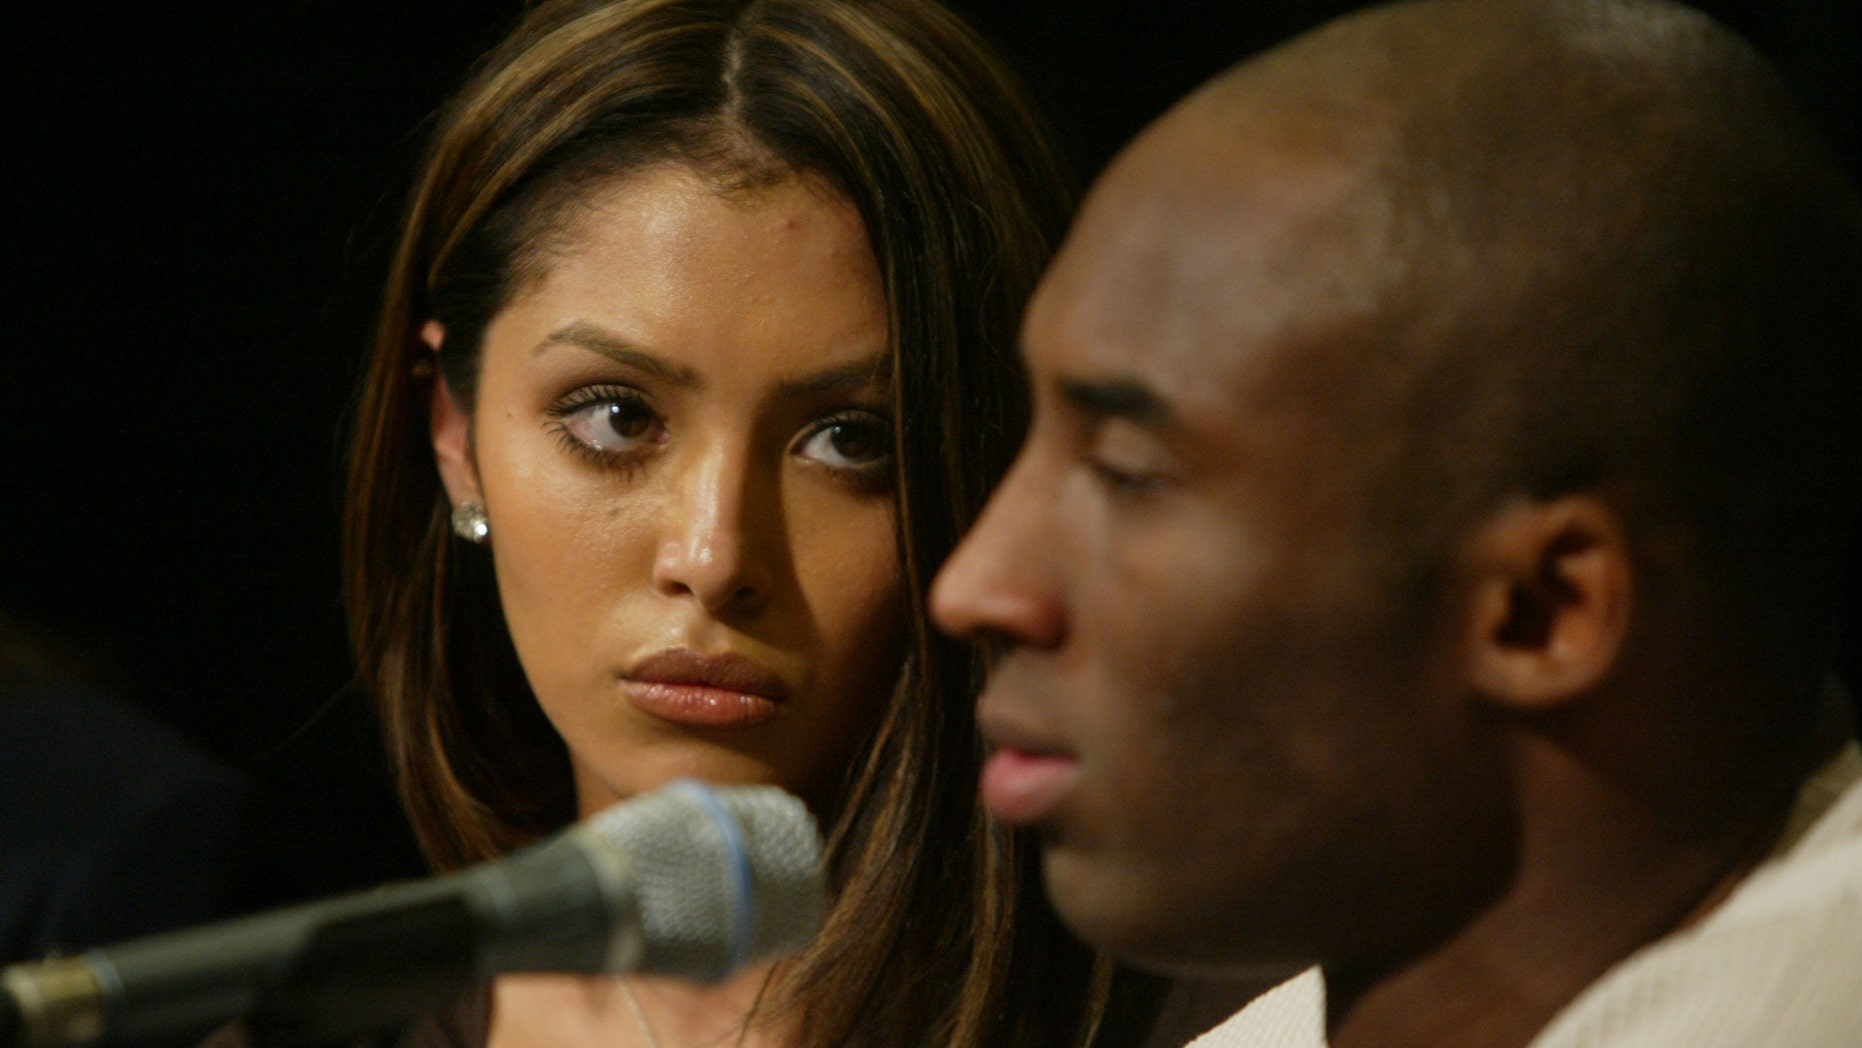 FILE PHOTO: July 18, 2003:  Vanessa Laine, wife of NBA star Kobe Bryant, listens during a press conference at Staples Center, the home of the Los Angeles Lakers, in Los Angeles, CA.  In the press conference, the NBA star claimed he is innocent of the sexual assault charges filed  by the District attorney of  Eagle, Colorado for the alleged rape of  a 19-year-old Colorado Woman.